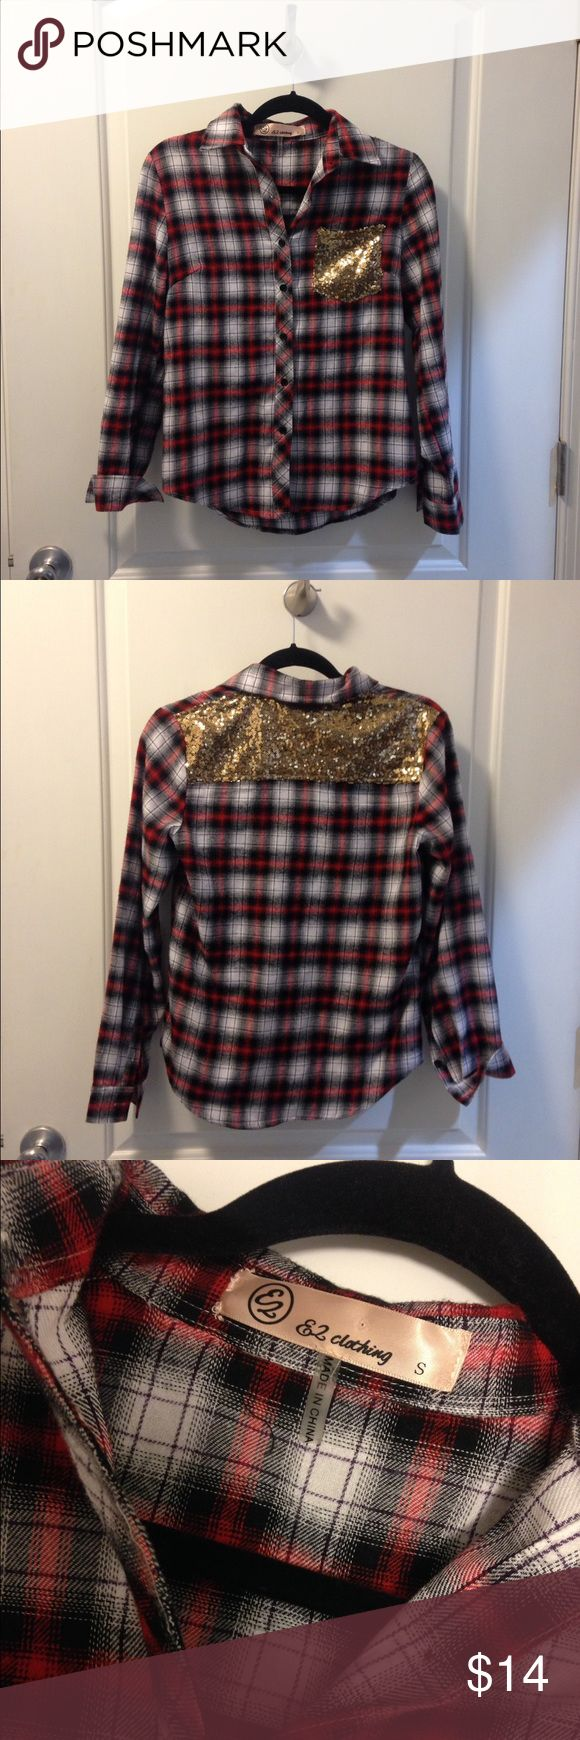 Long Sleeve Flannel w/ Sequin Detailing ONLY WORN ONCE •• PINK LILY BOUTIQUE          Red & Black Flannel w/ Gold Sequin Detailing Pink Lily Boutique Tops Button Down Shirts